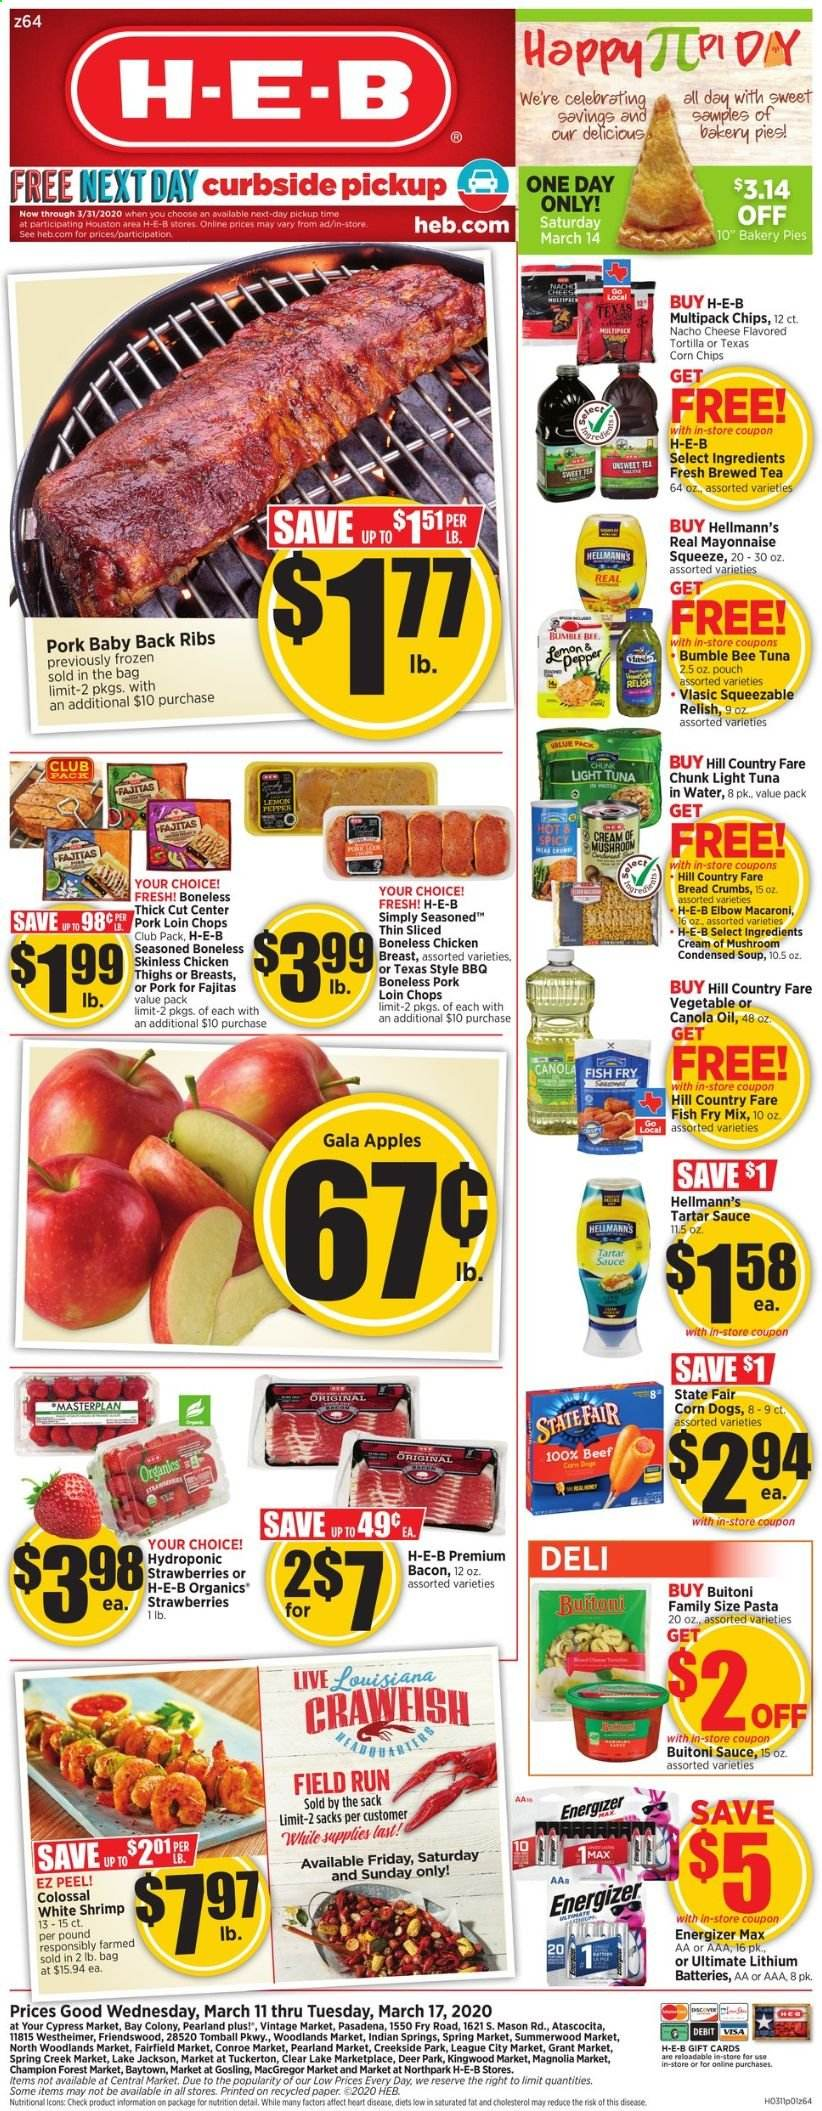 H-E-B Flyer  - 03.11.2020 - 03.17.2020. Page 1.